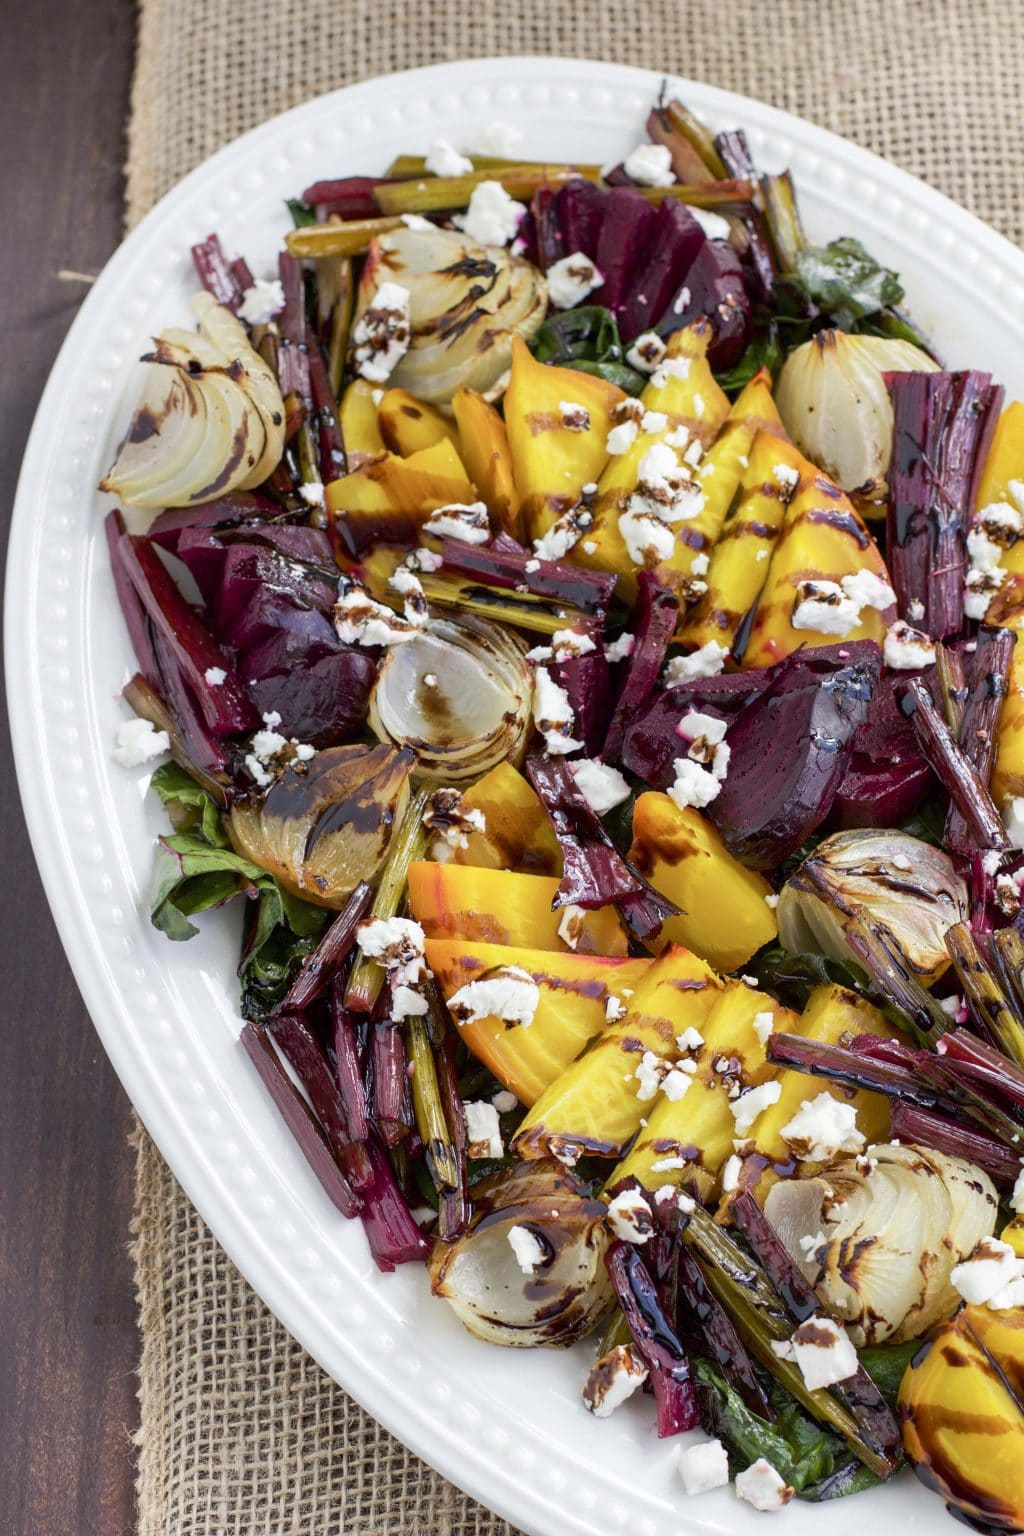 Roasted Beet and Onion Salad with Feta Cheese - Stacey ...